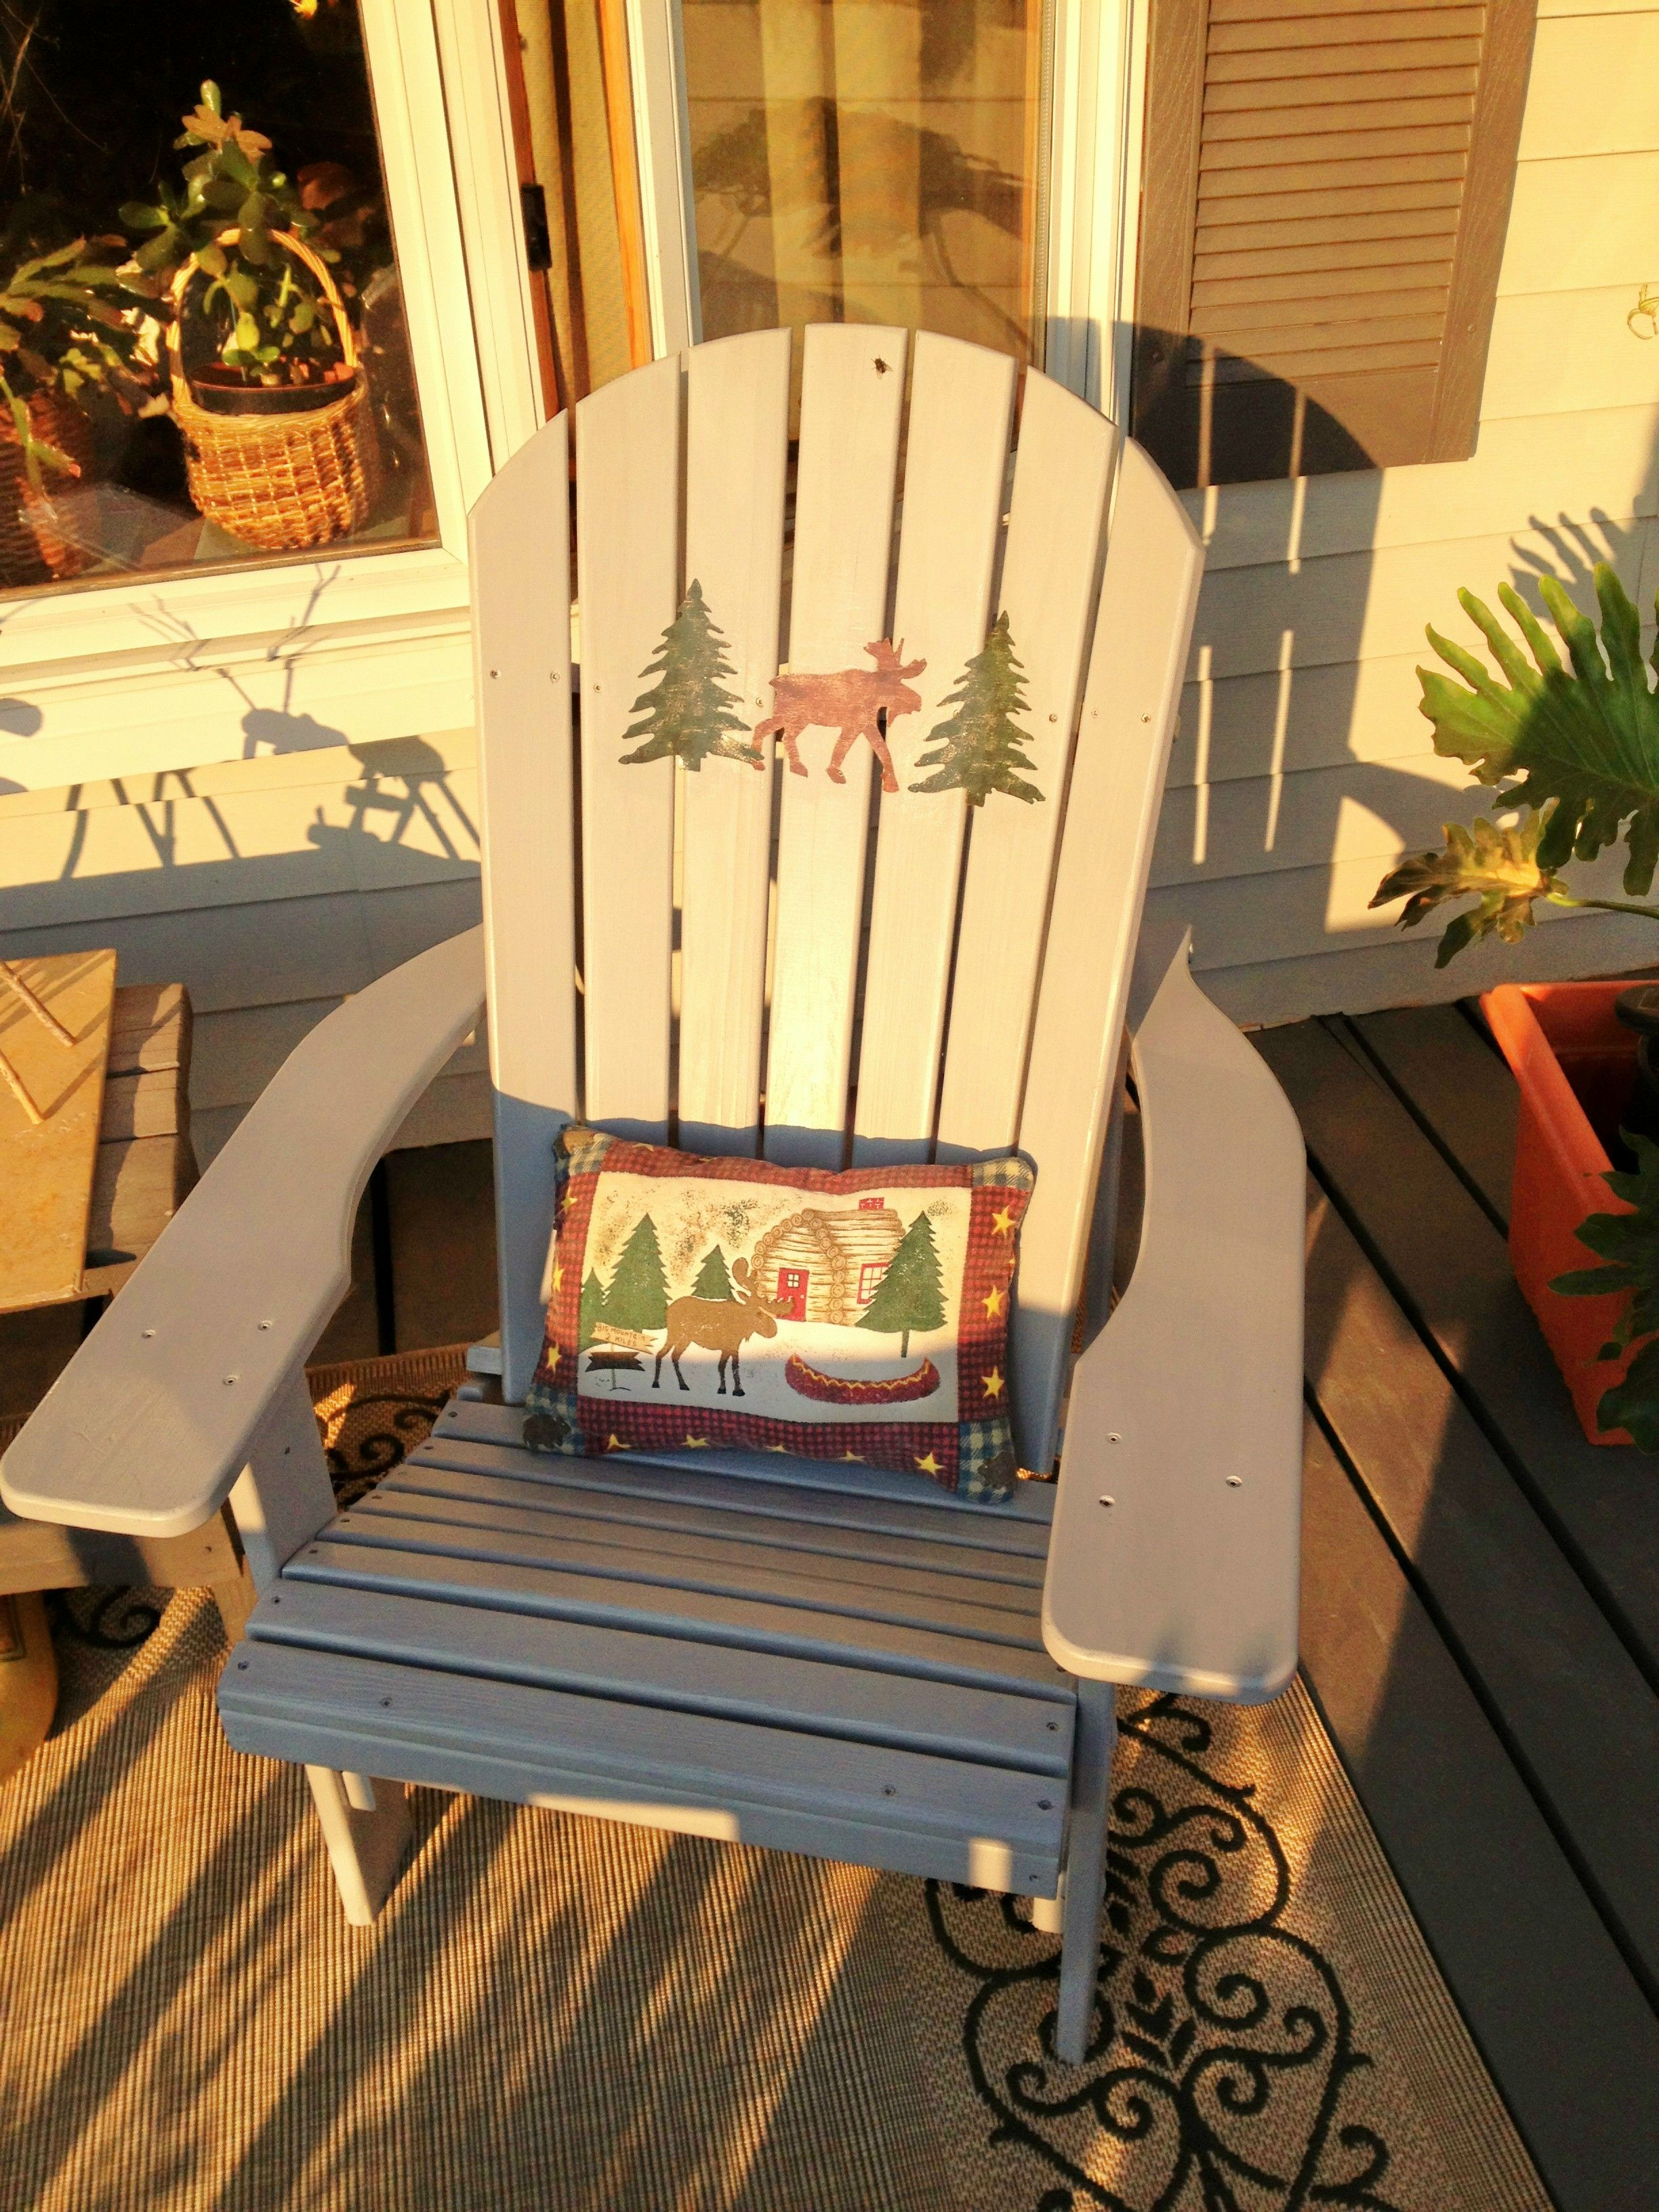 I painted an unfinished adirondack chair and added wallpaper decals